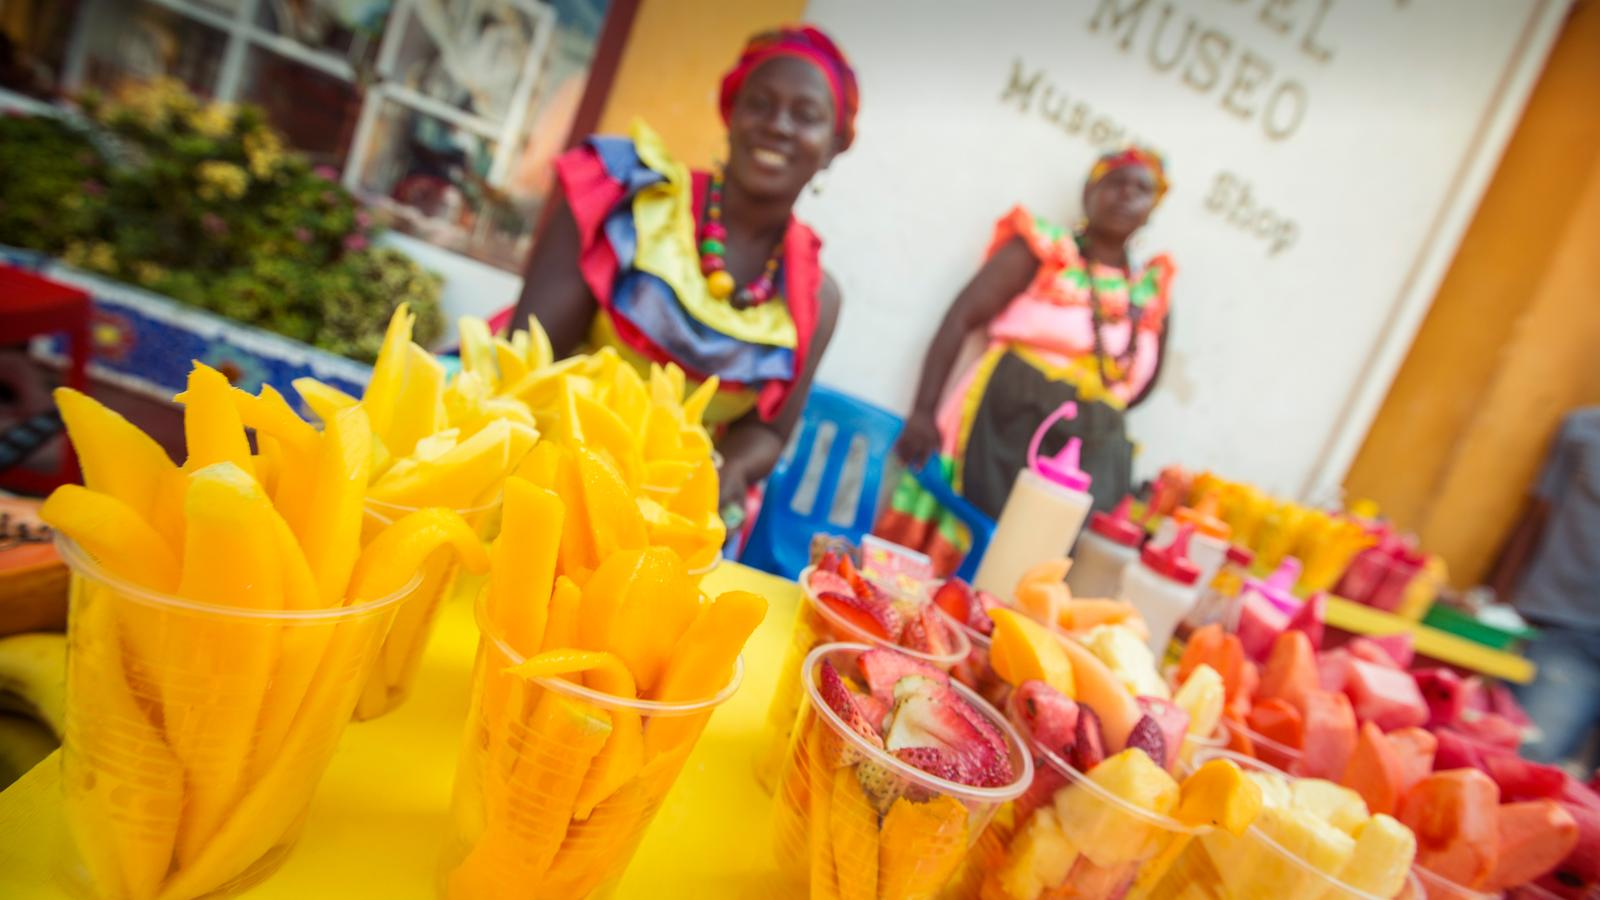 Local women selling fruit at the market in Cartagena, Colombia